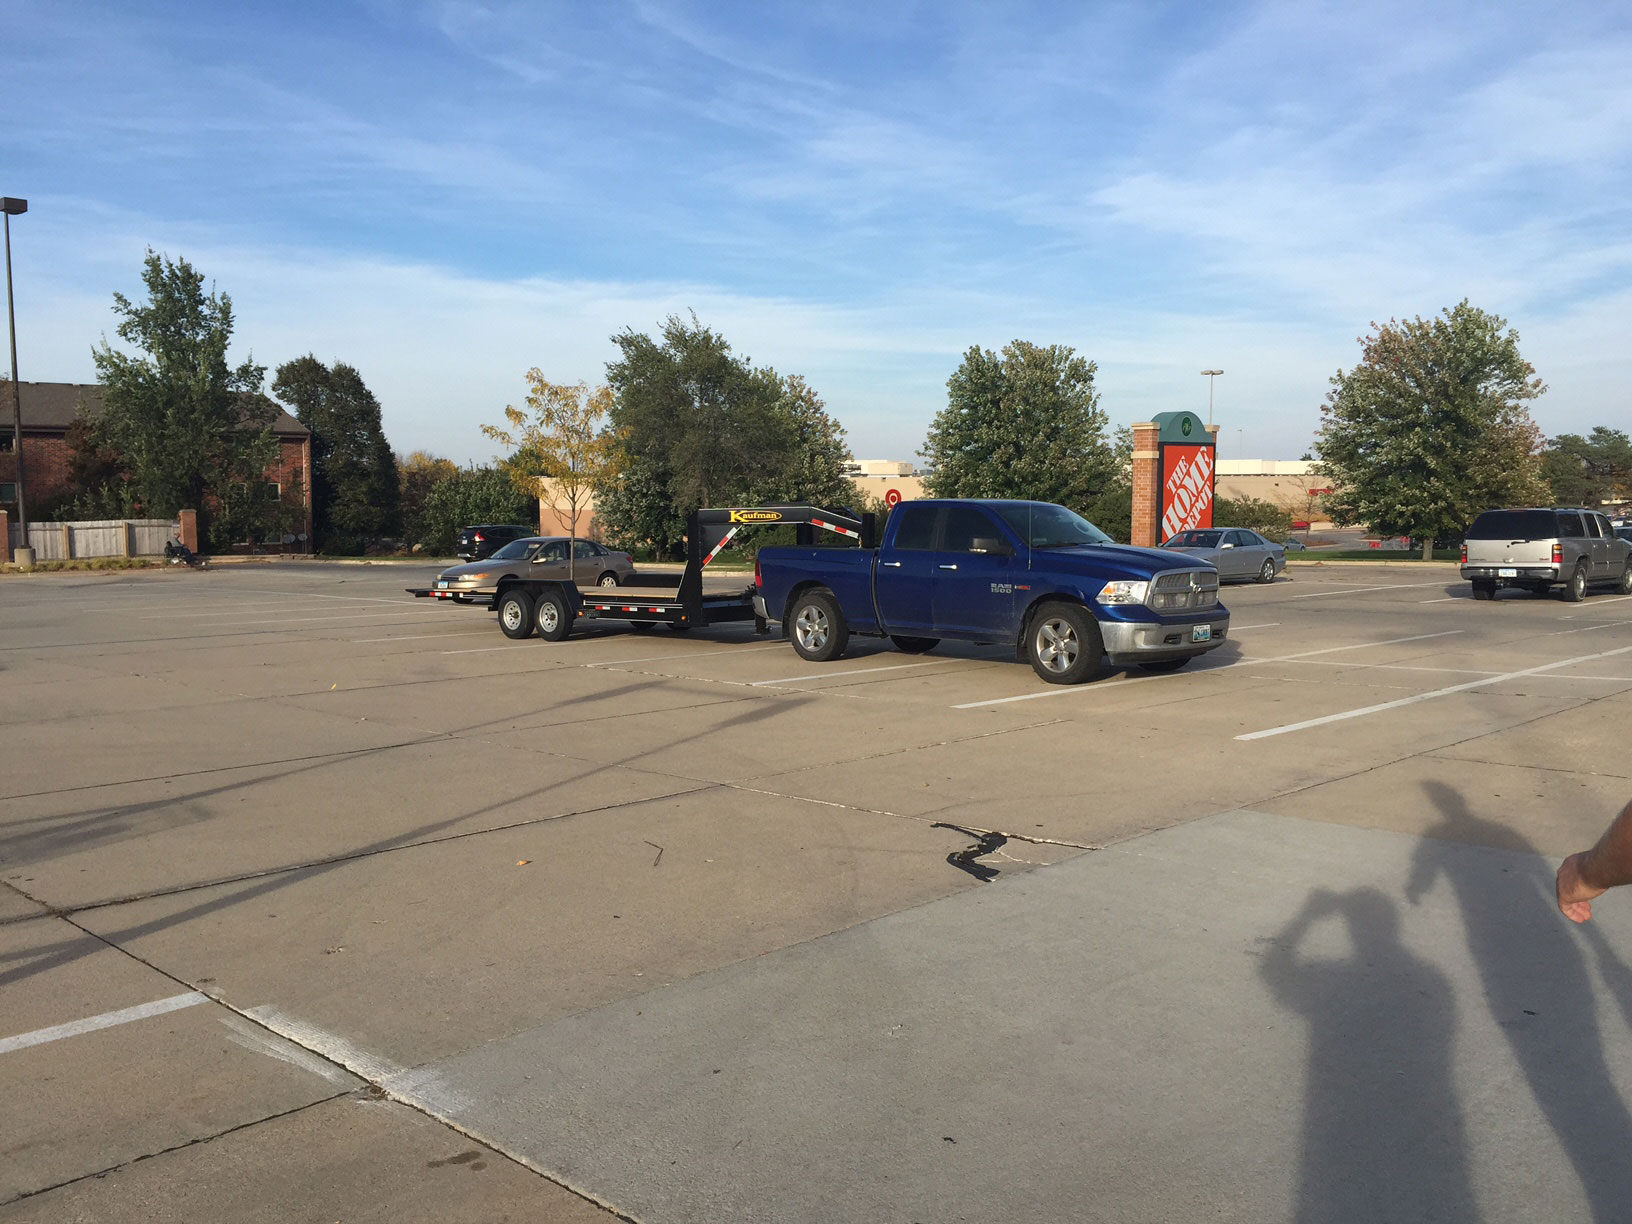 Heavy Duty Towing! The Little Tank - EcoDiesel - Can Do it!-tow2.jpg